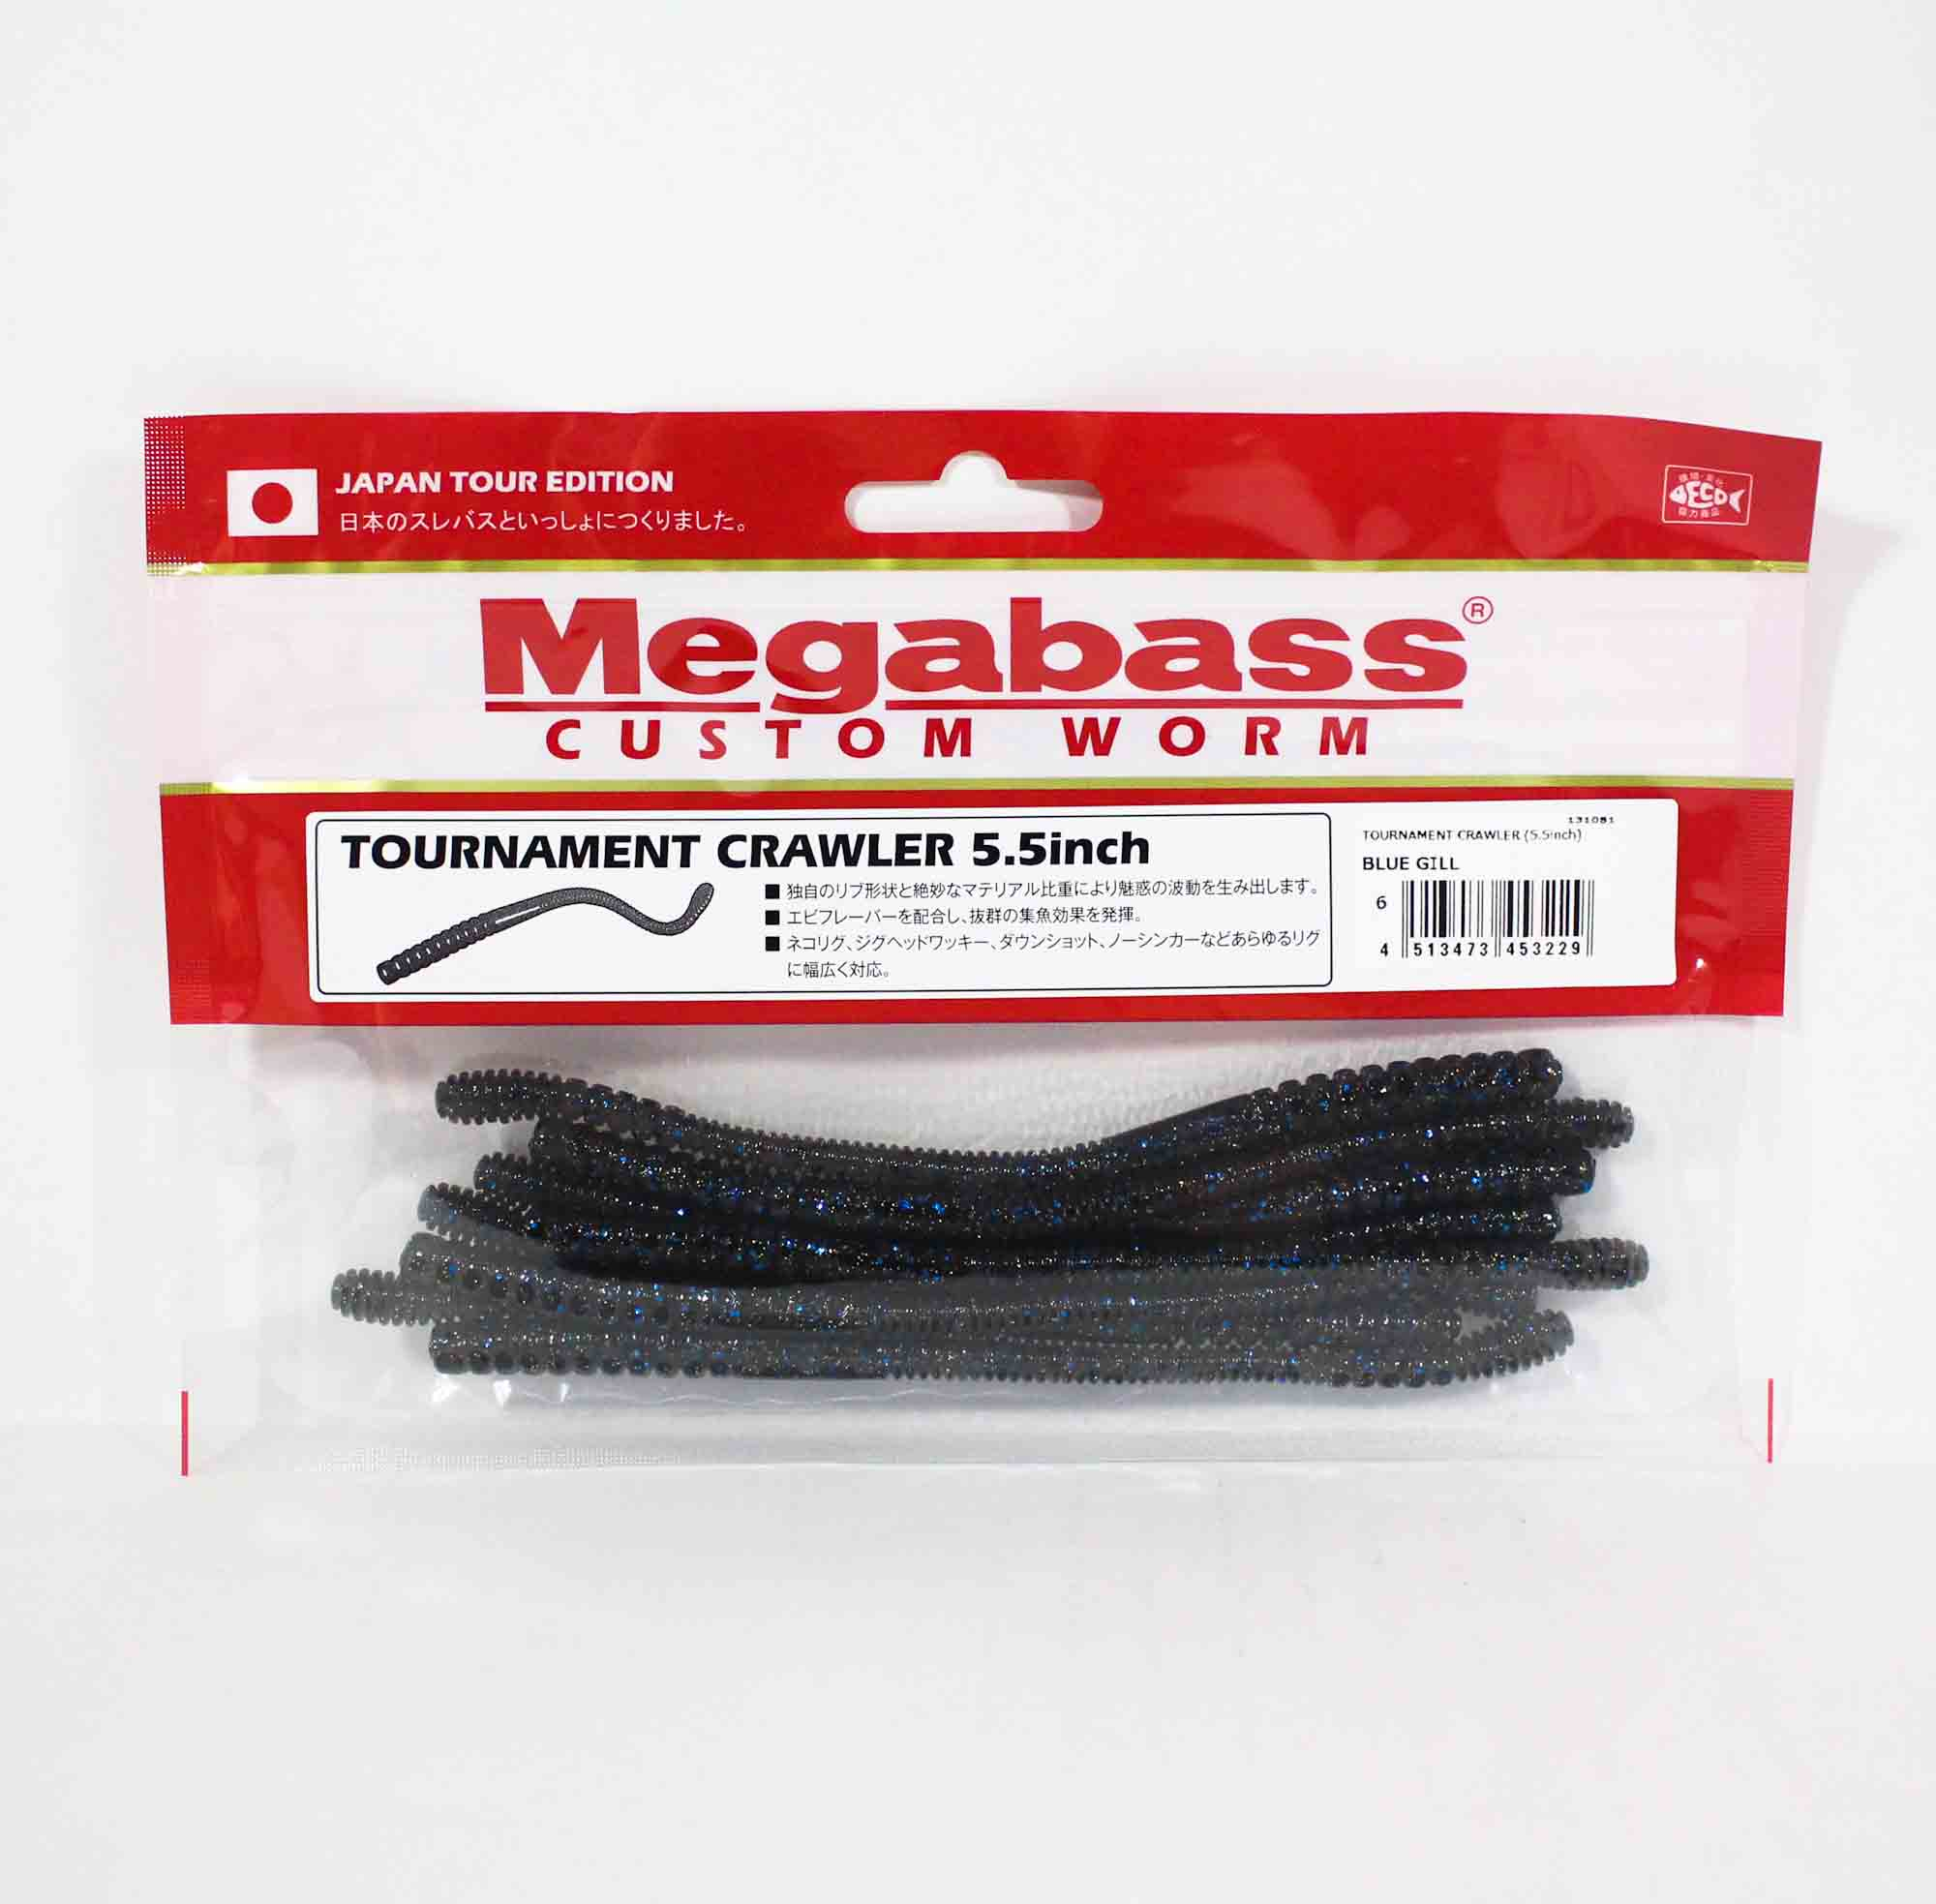 Megabass Tournament Crawler 5.5 Inch Soft Lure Blue Gill (3229)